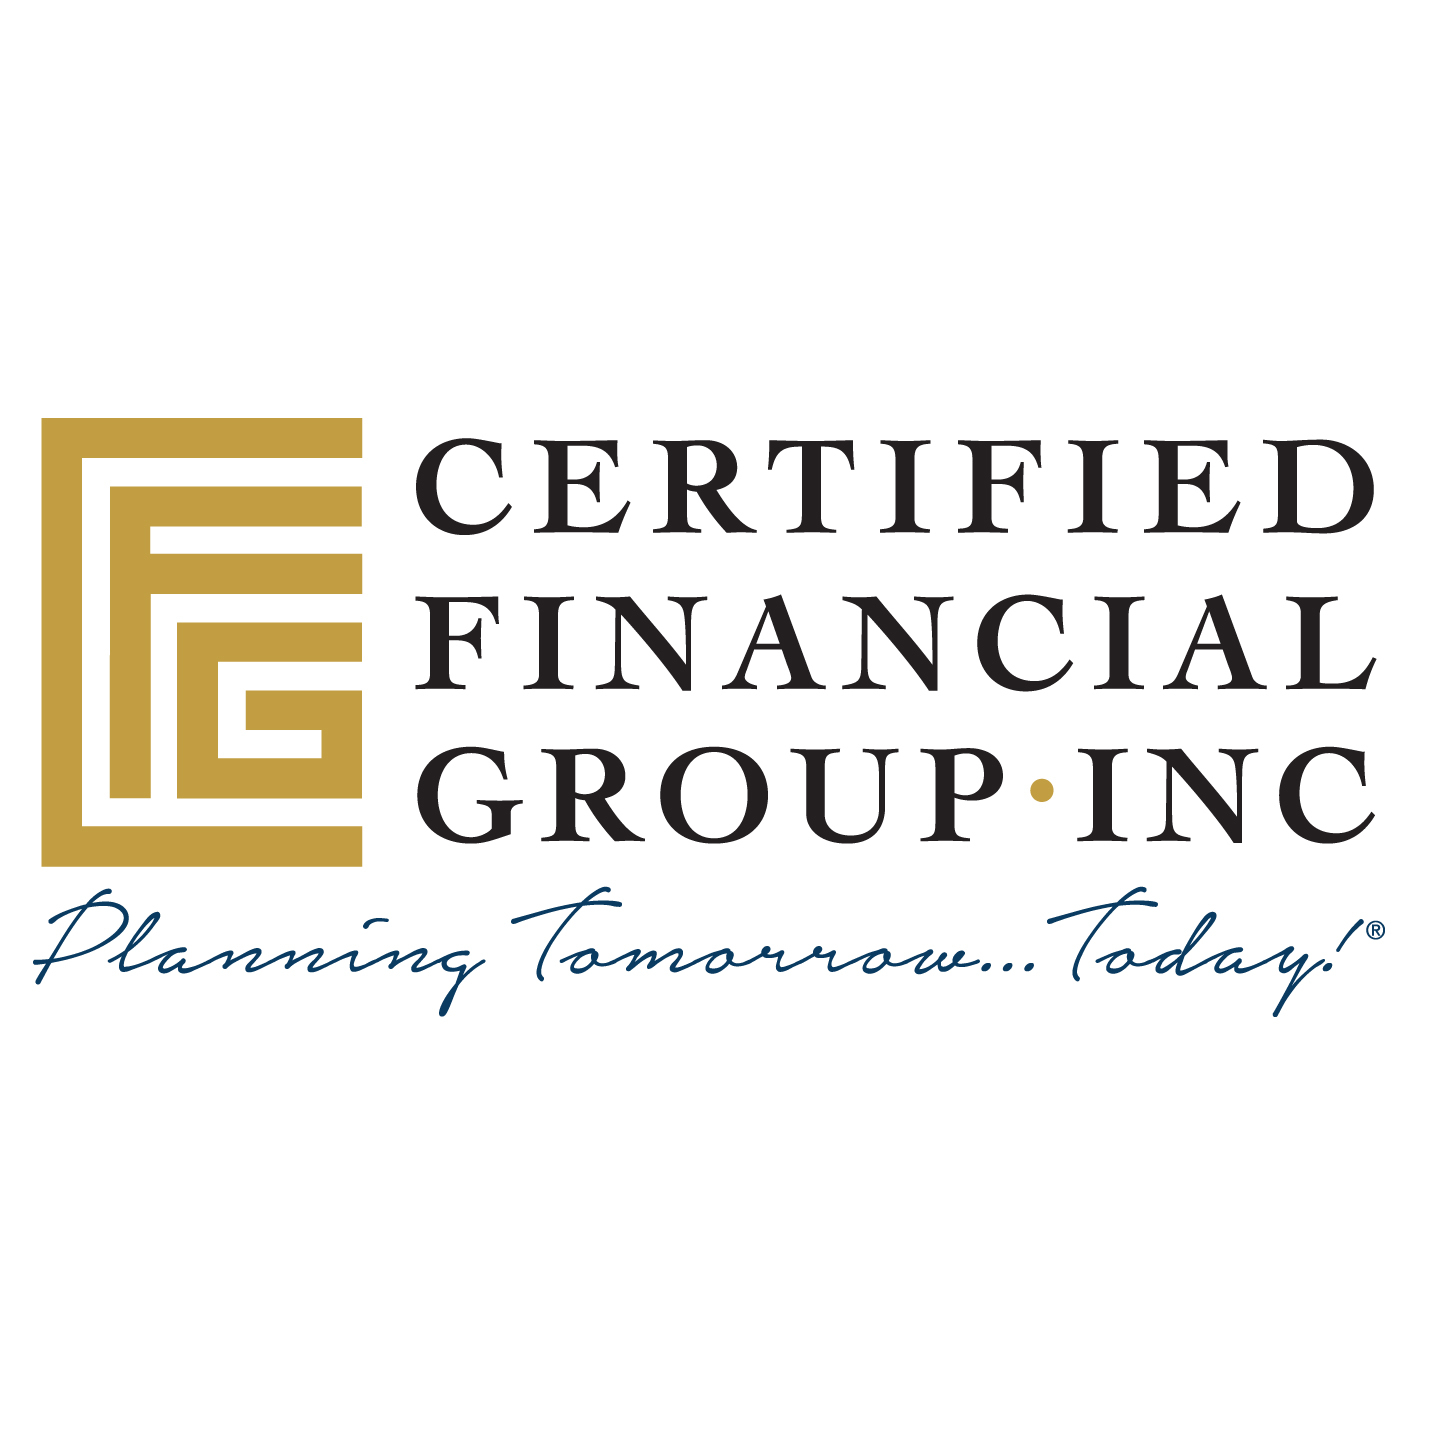 Certified Financial Group, Inc - Altamonte Spgs, FL - Financial Advisors